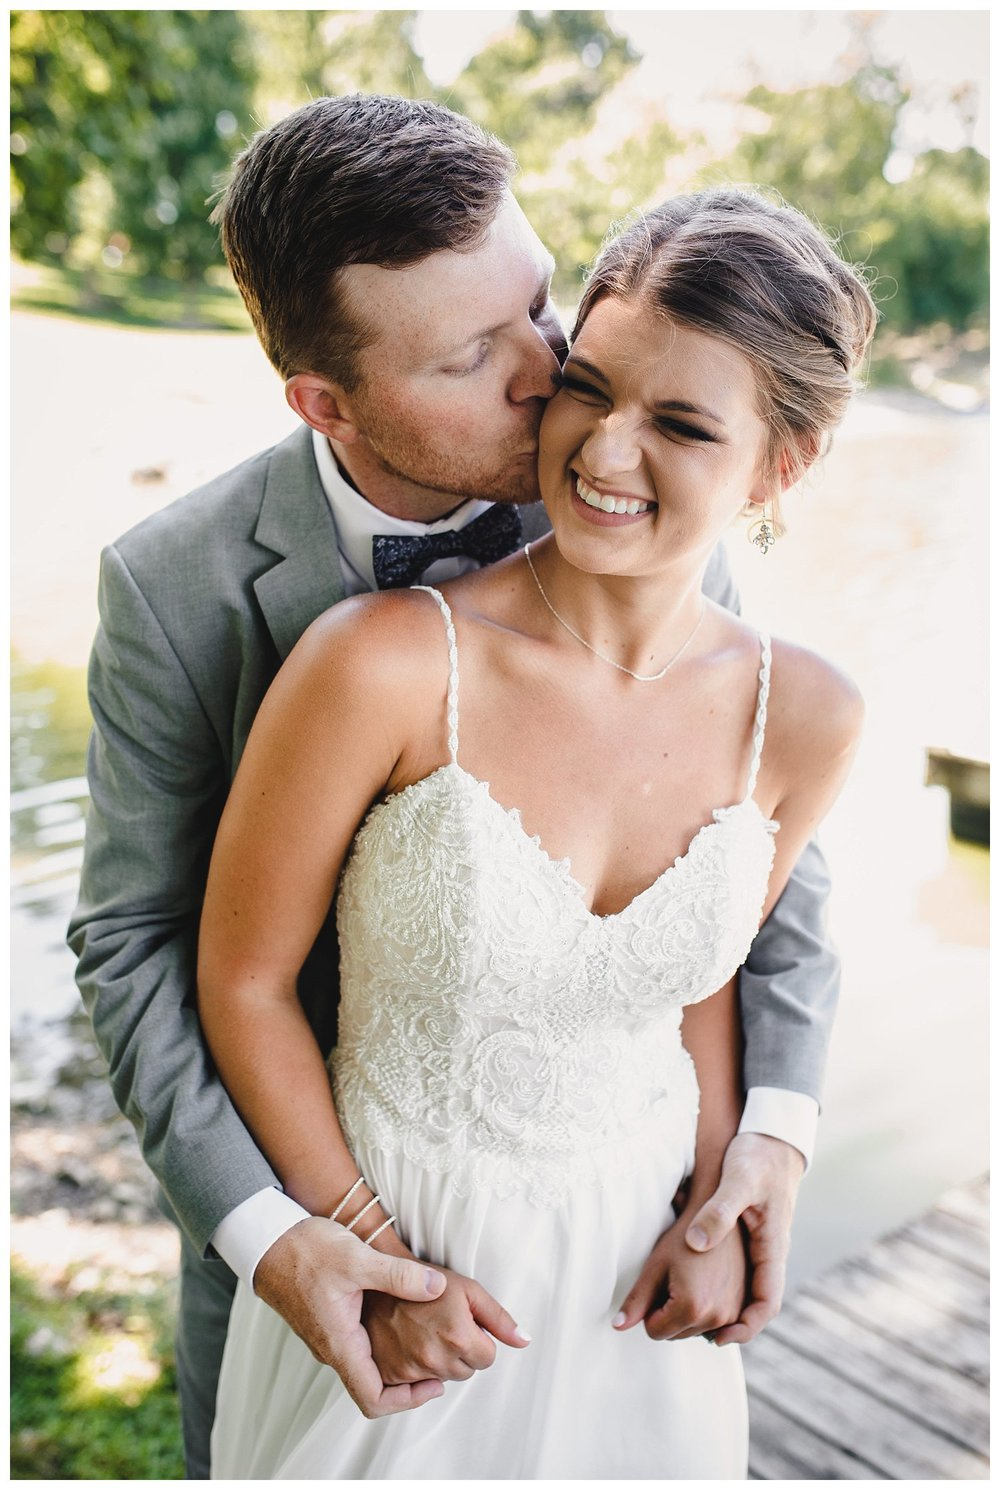 Kelsey_Diane_Photography_Kansas_City_Engagement_Wedding_Photographer_Midwest_Traveling_Missouri_Lee_Andrew_Hall_And_Garden_Blue_Springs_Wedding_Clayton_Kimberly_Summer_Wedding_0821.jpg